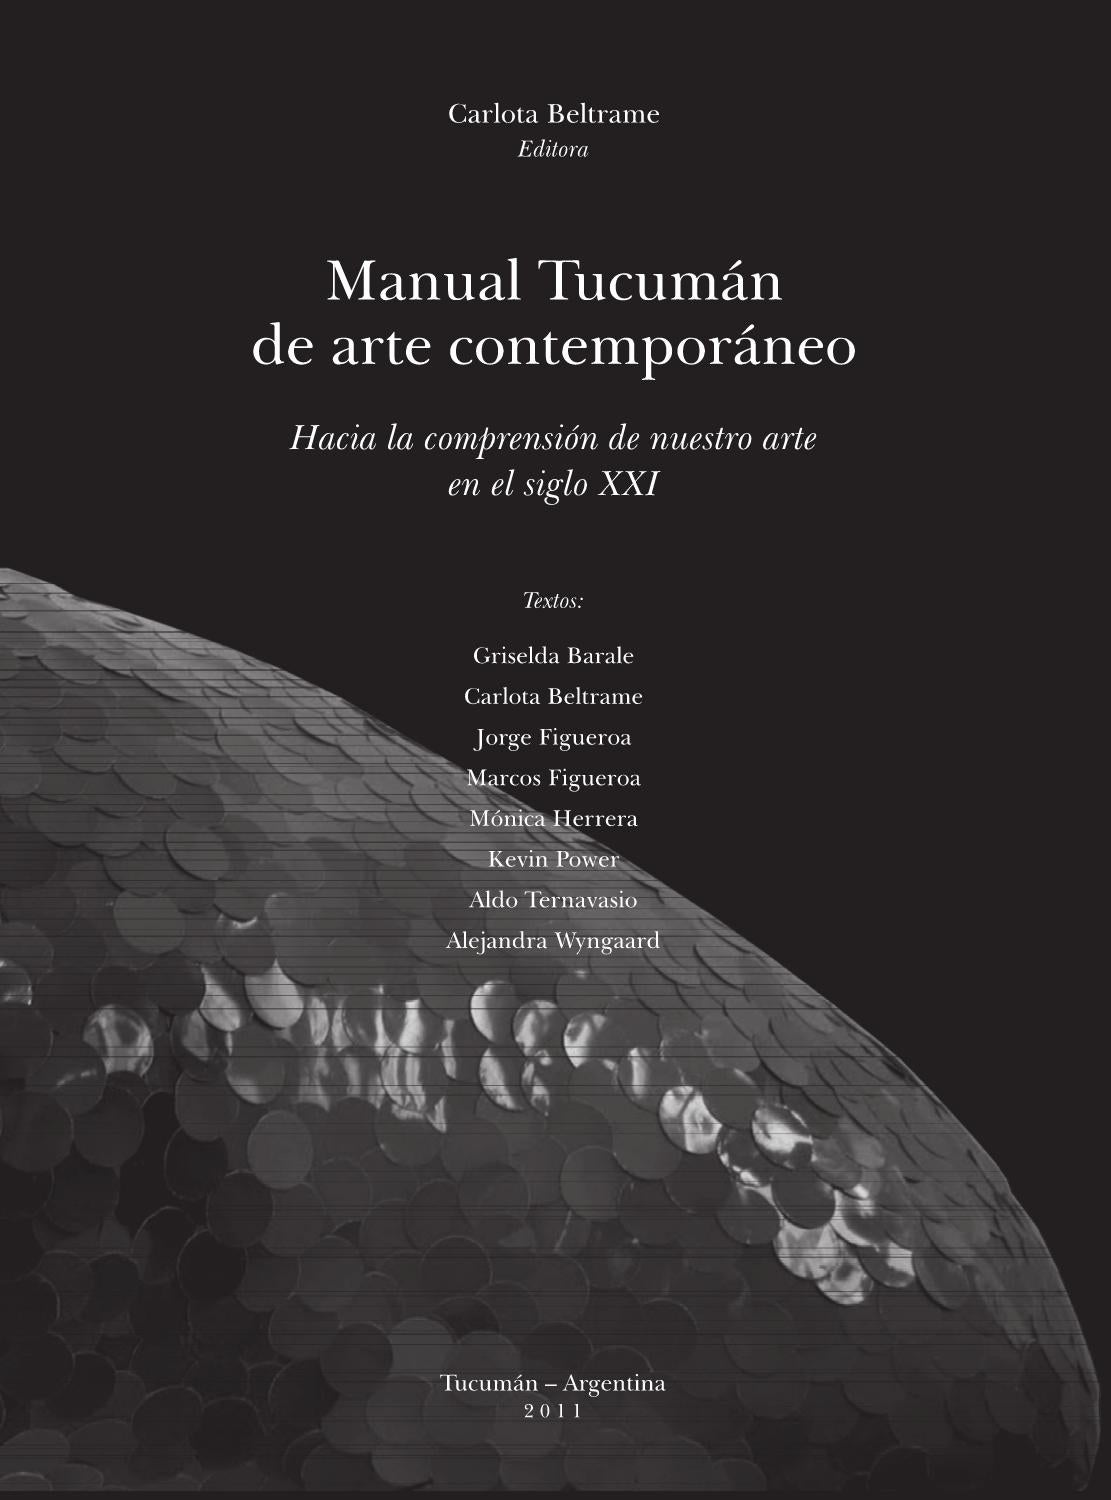 Manual Tucuman De Arte Contemporaneo By Entecultural Tucuman Issuu